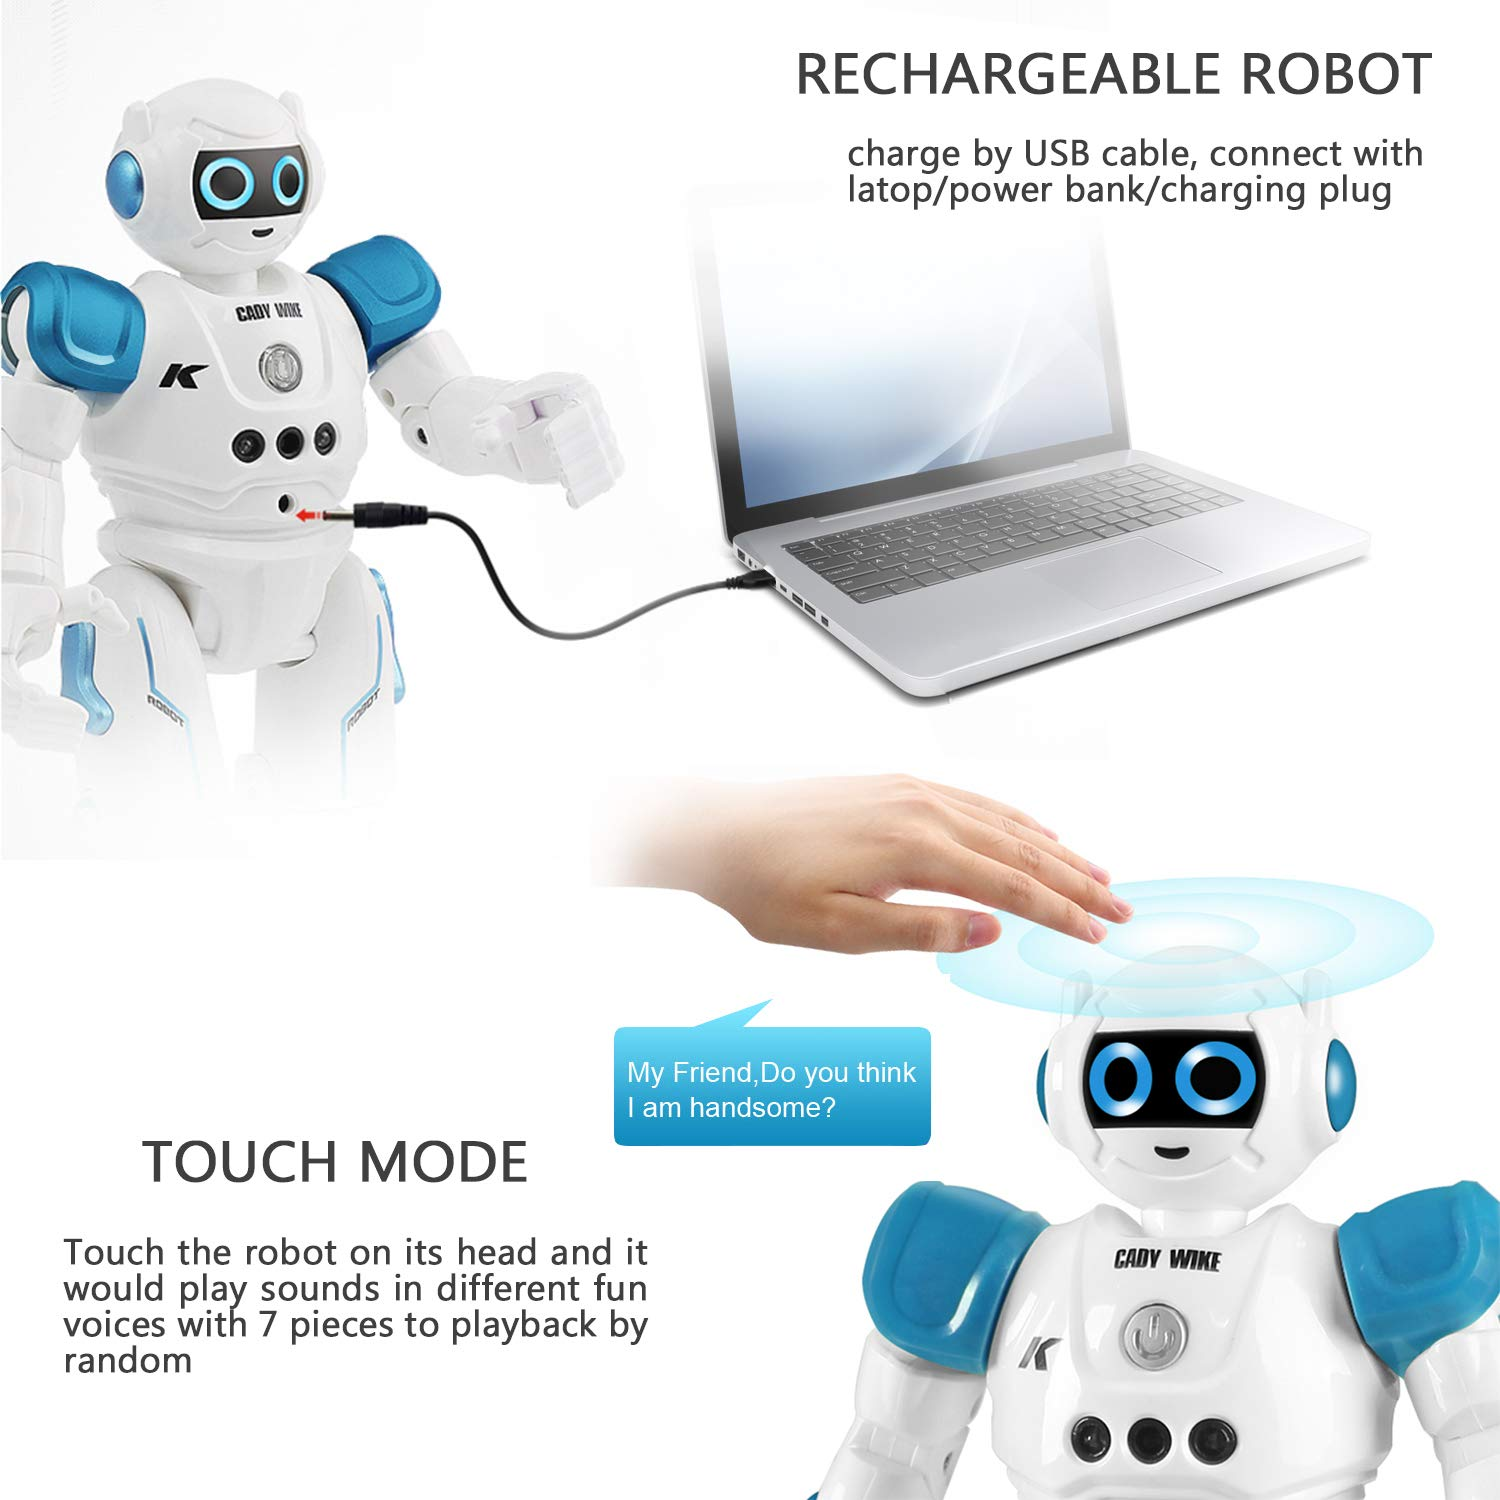 IHBUDS Robot Toy for Kids, Smart Robot Kit with Remote Control & Gesture Control, Perfect Robotics Gifts for Boys Girls Learning Programmable Walking Dancing Singing (Blue) by IHBUDS (Image #4)